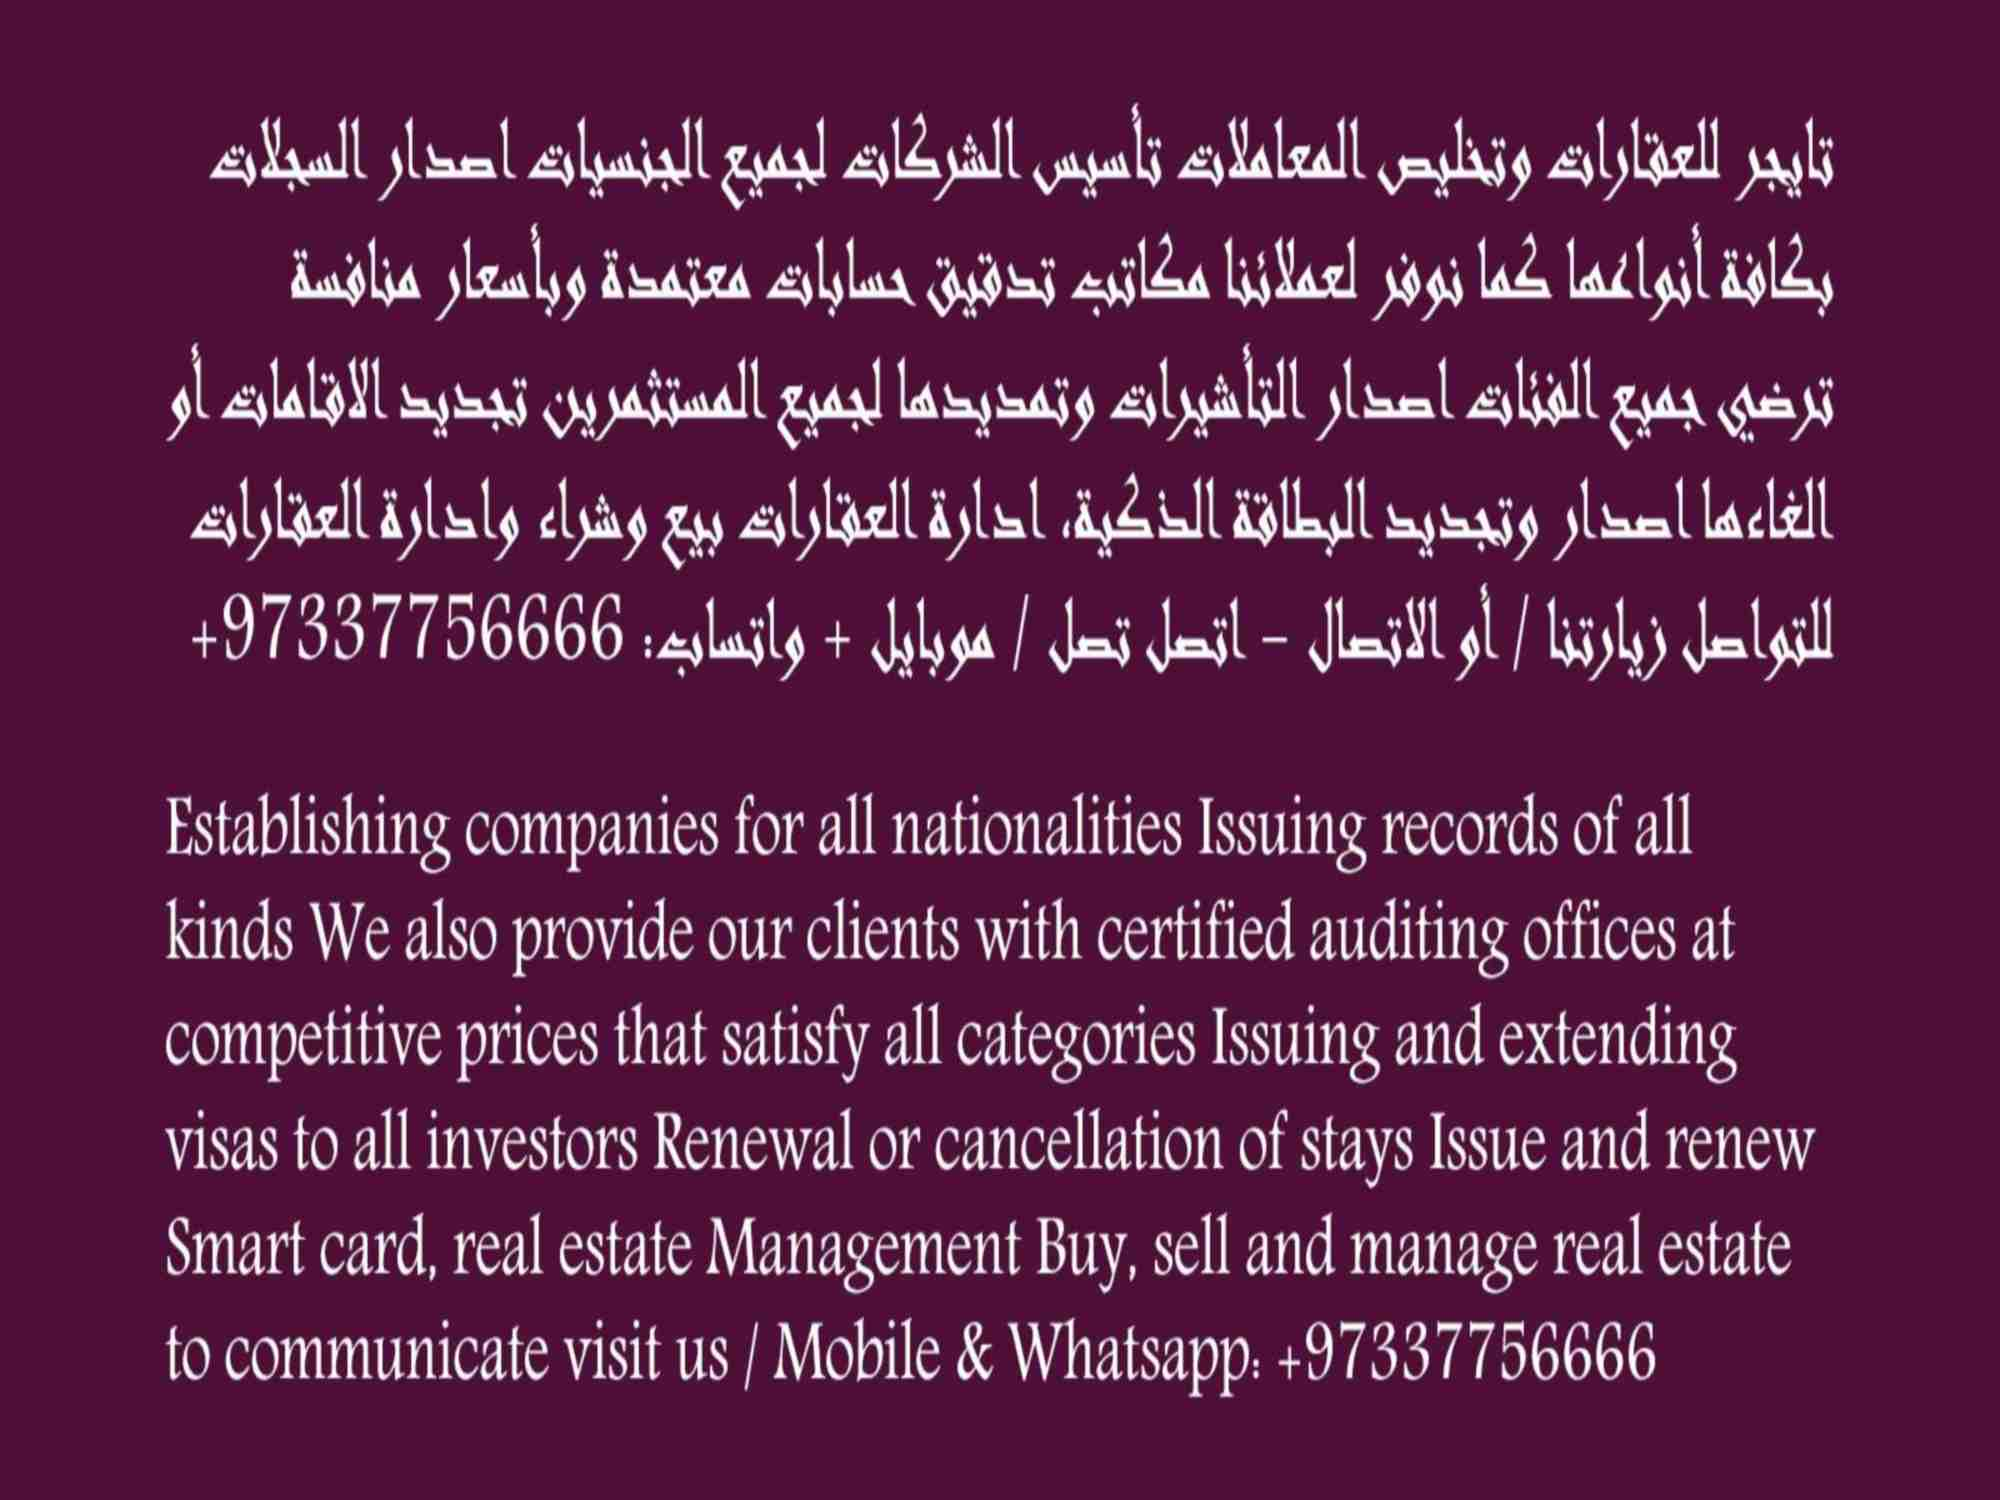 We gives out loans for developing businesses and competitive edge, Personal/business Loans (Secure and Unsecured) Consolidation Loan and many more. Quality serv-  تأسيس شركات لجميع...